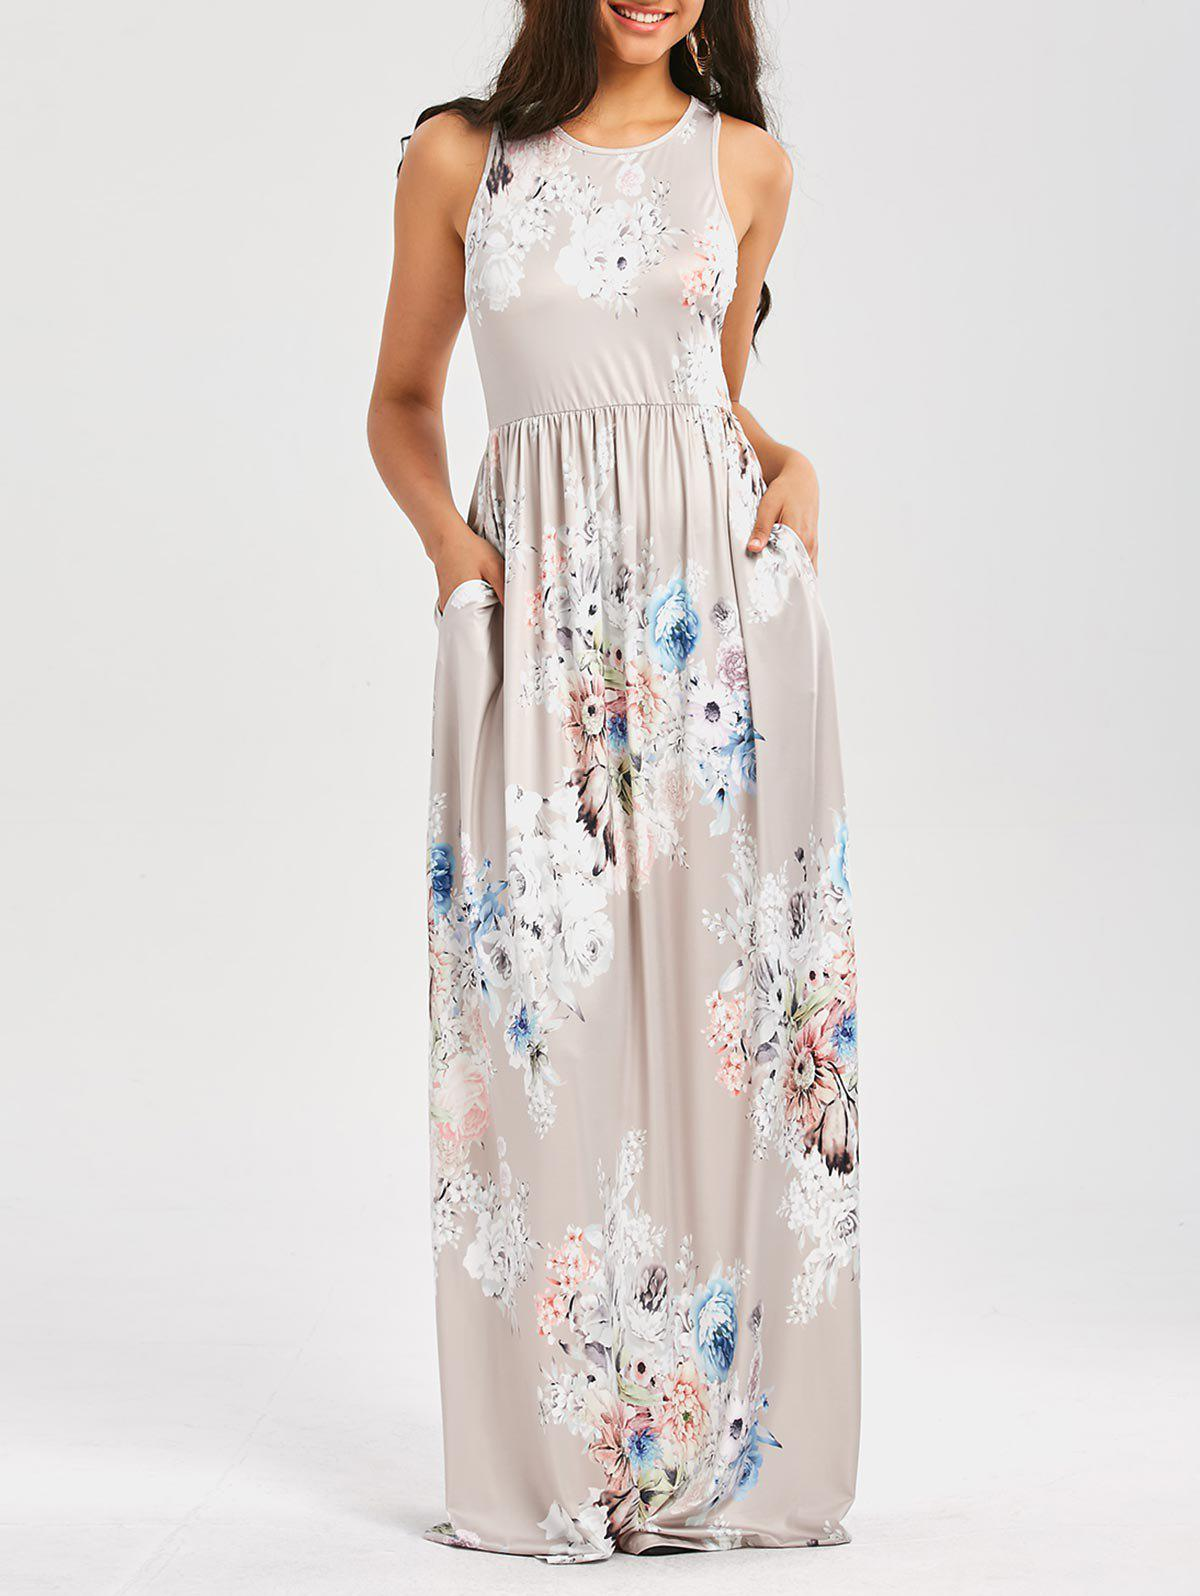 Maxi Floral Racerback Semi Formal Prom DressWOMEN<br><br>Size: XL; Color: LIGHT GRAY; Style: Casual; Material: Polyester,Spandex; Silhouette: Beach; Dresses Length: Floor-Length; Neckline: Round Collar; Sleeve Length: Sleeveless; Pattern Type: Floral,Print; Placement Print: No; Elasticity: Elastic; With Belt: No; Season: Summer; Weight: 0.4500kg; Package Contents: 1 x Dress;